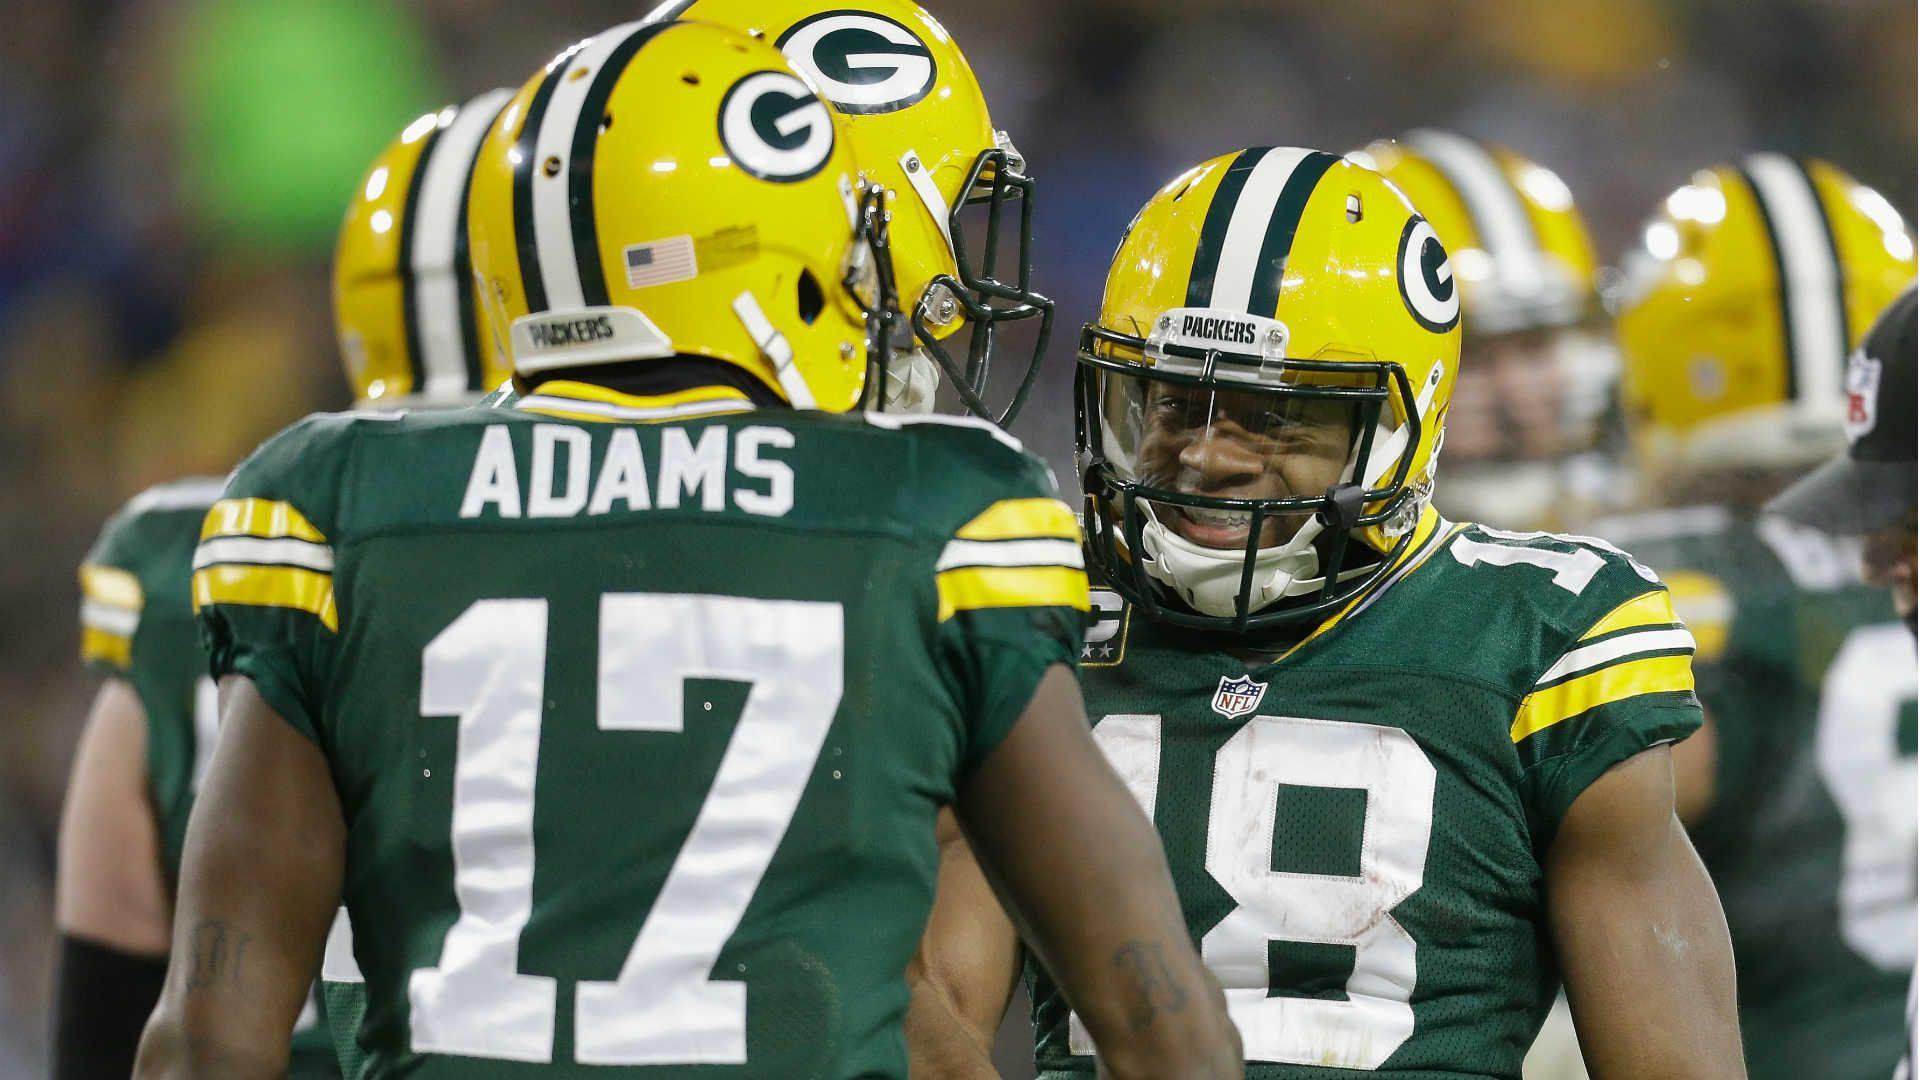 Jordy Nelson's torn ACL upgrades fantasy outlook for Cobb, Adams